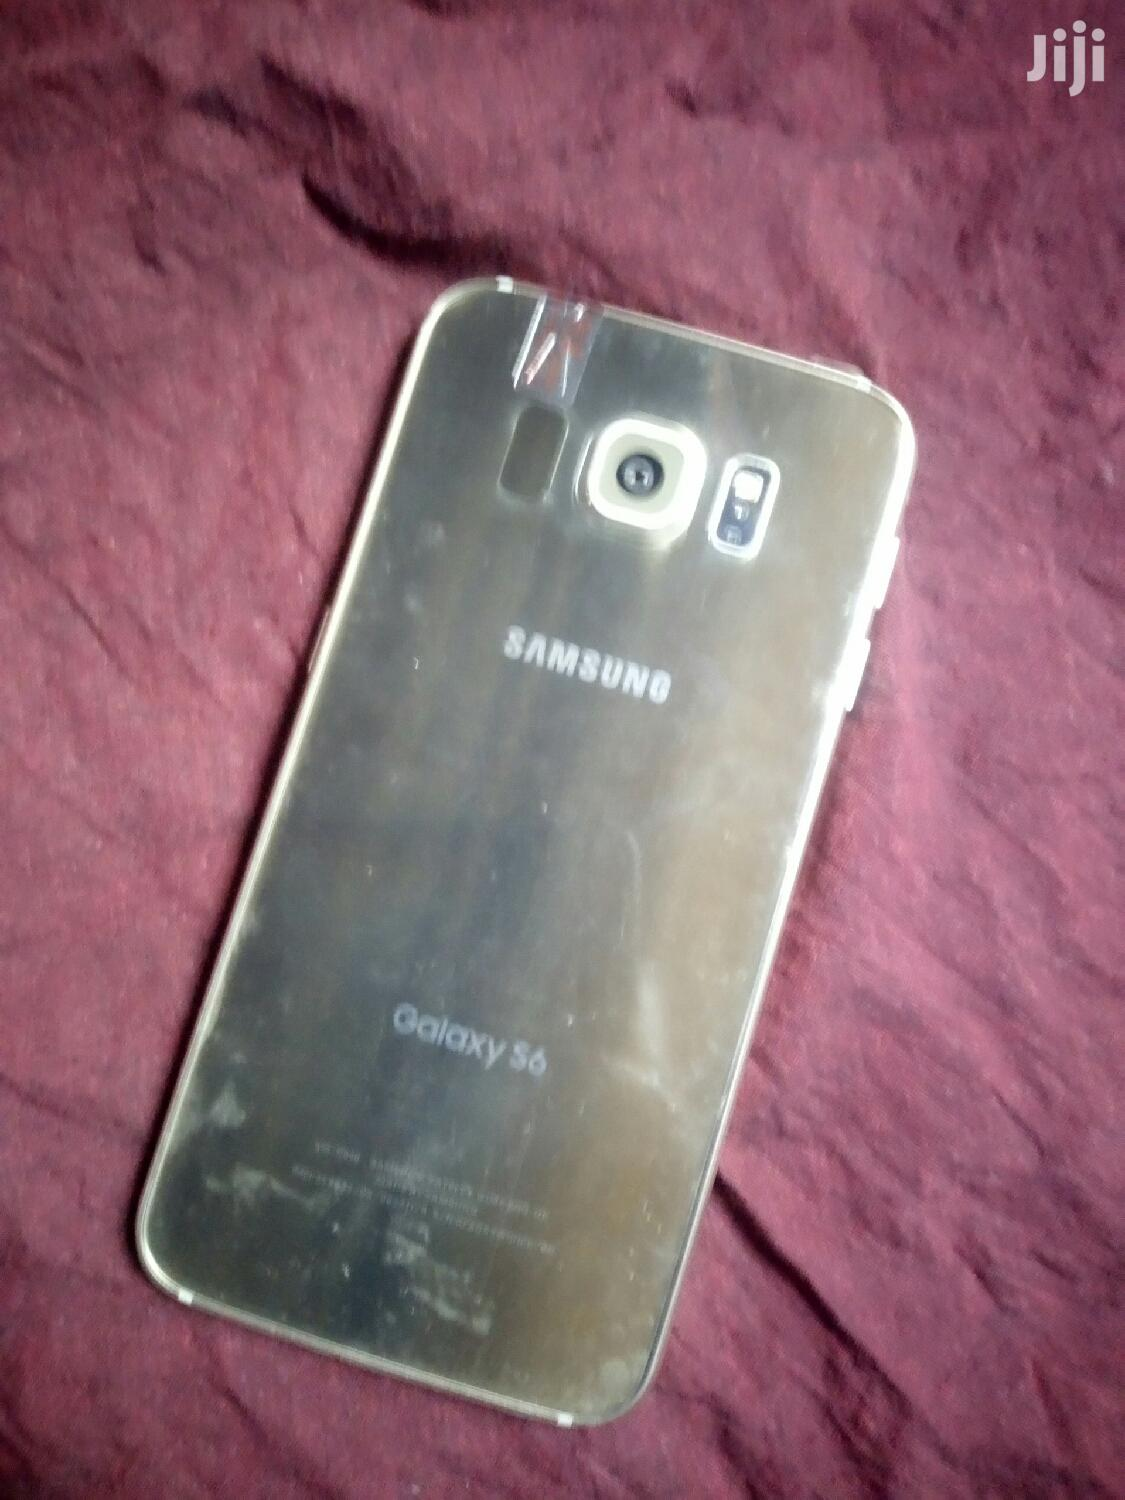 Samsung Galaxy S6 32 GB Gold   Mobile Phones for sale in Kokomlemle, Greater Accra, Ghana